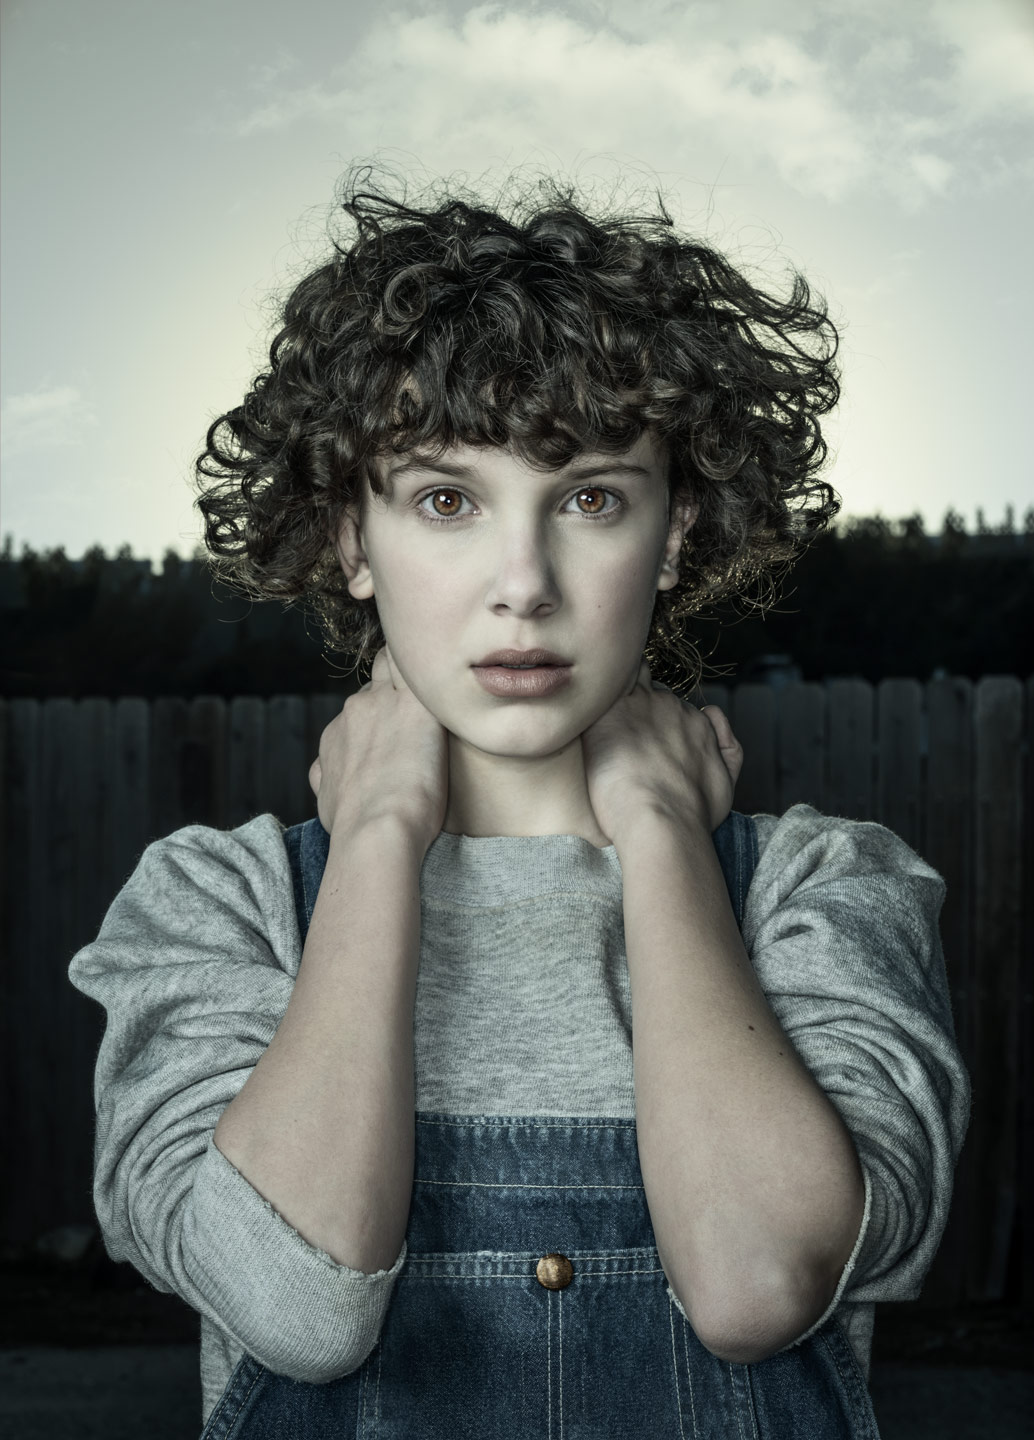 Winters_EW_Stranger_Things_Millie_Bobby_Brown_0592_v2